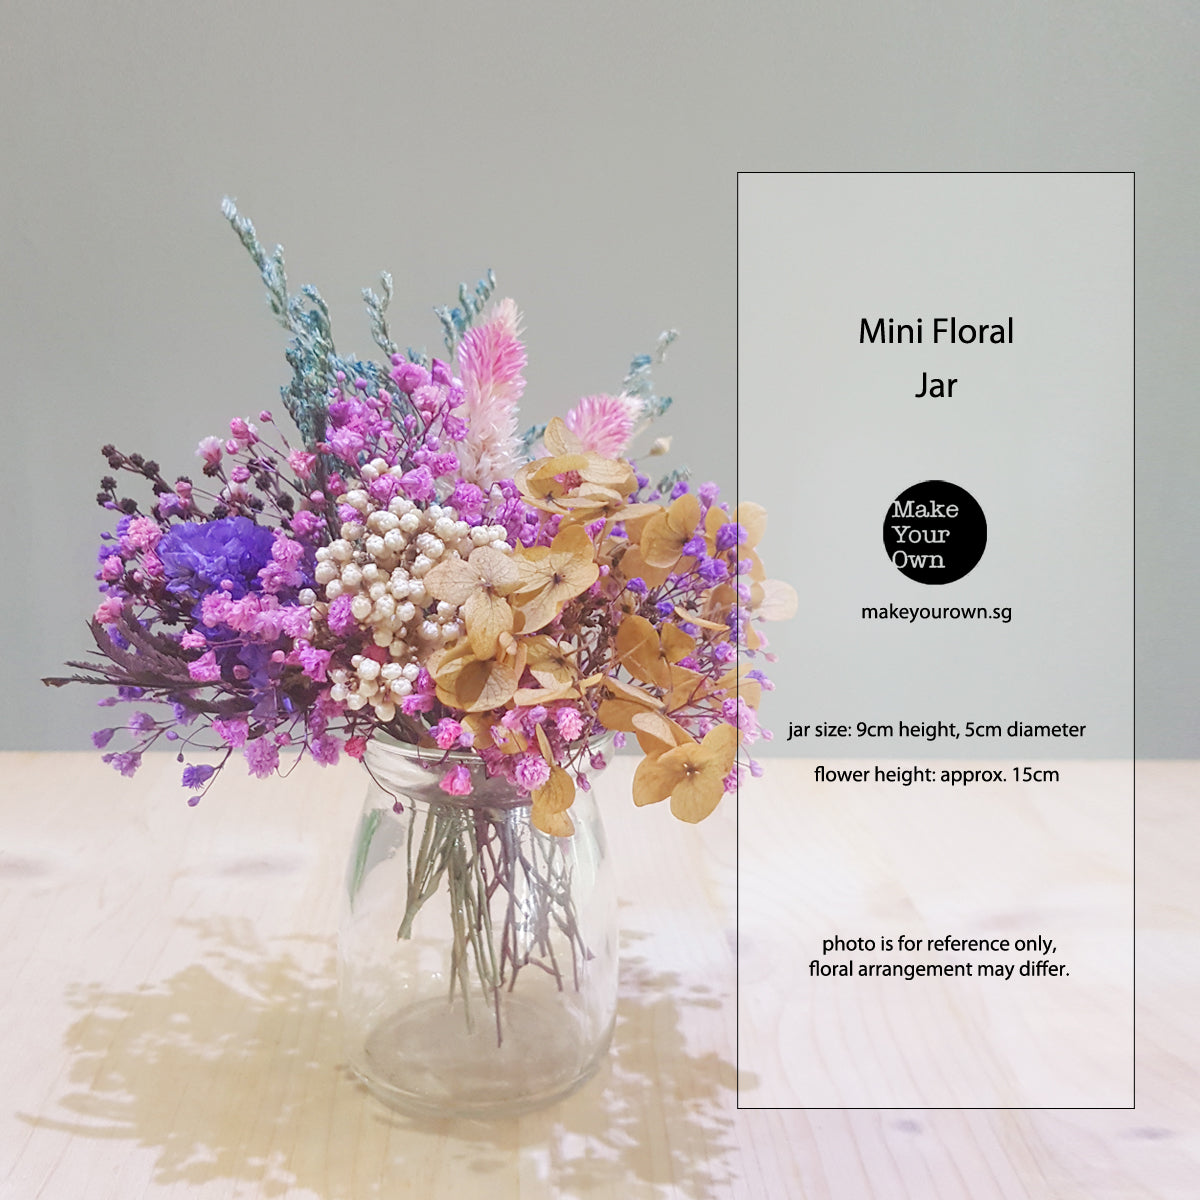 korean dried preserved flower arrangement diy kit virtual event workshop Singapore